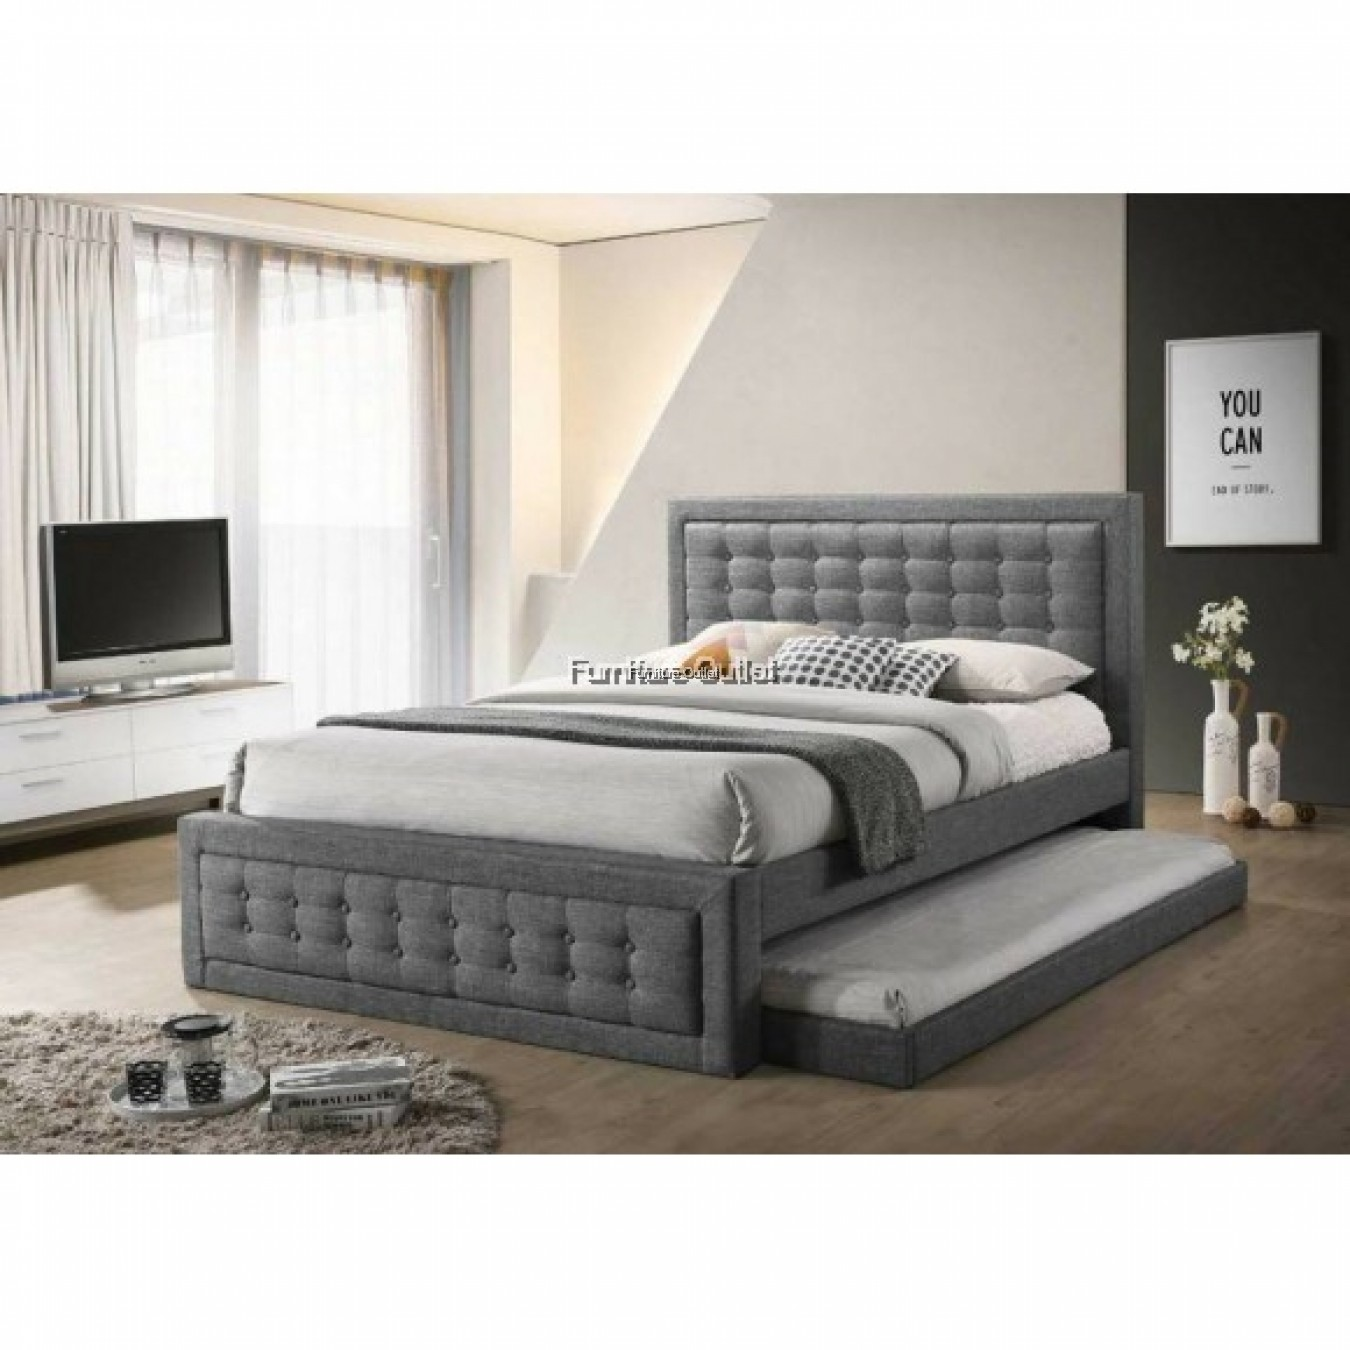 [ FREE SHIPPING ] VICTORIA QUEEN + PULLOUT BED + BENCH + 6'' SINGLE 10'' SPRING MATTRESS